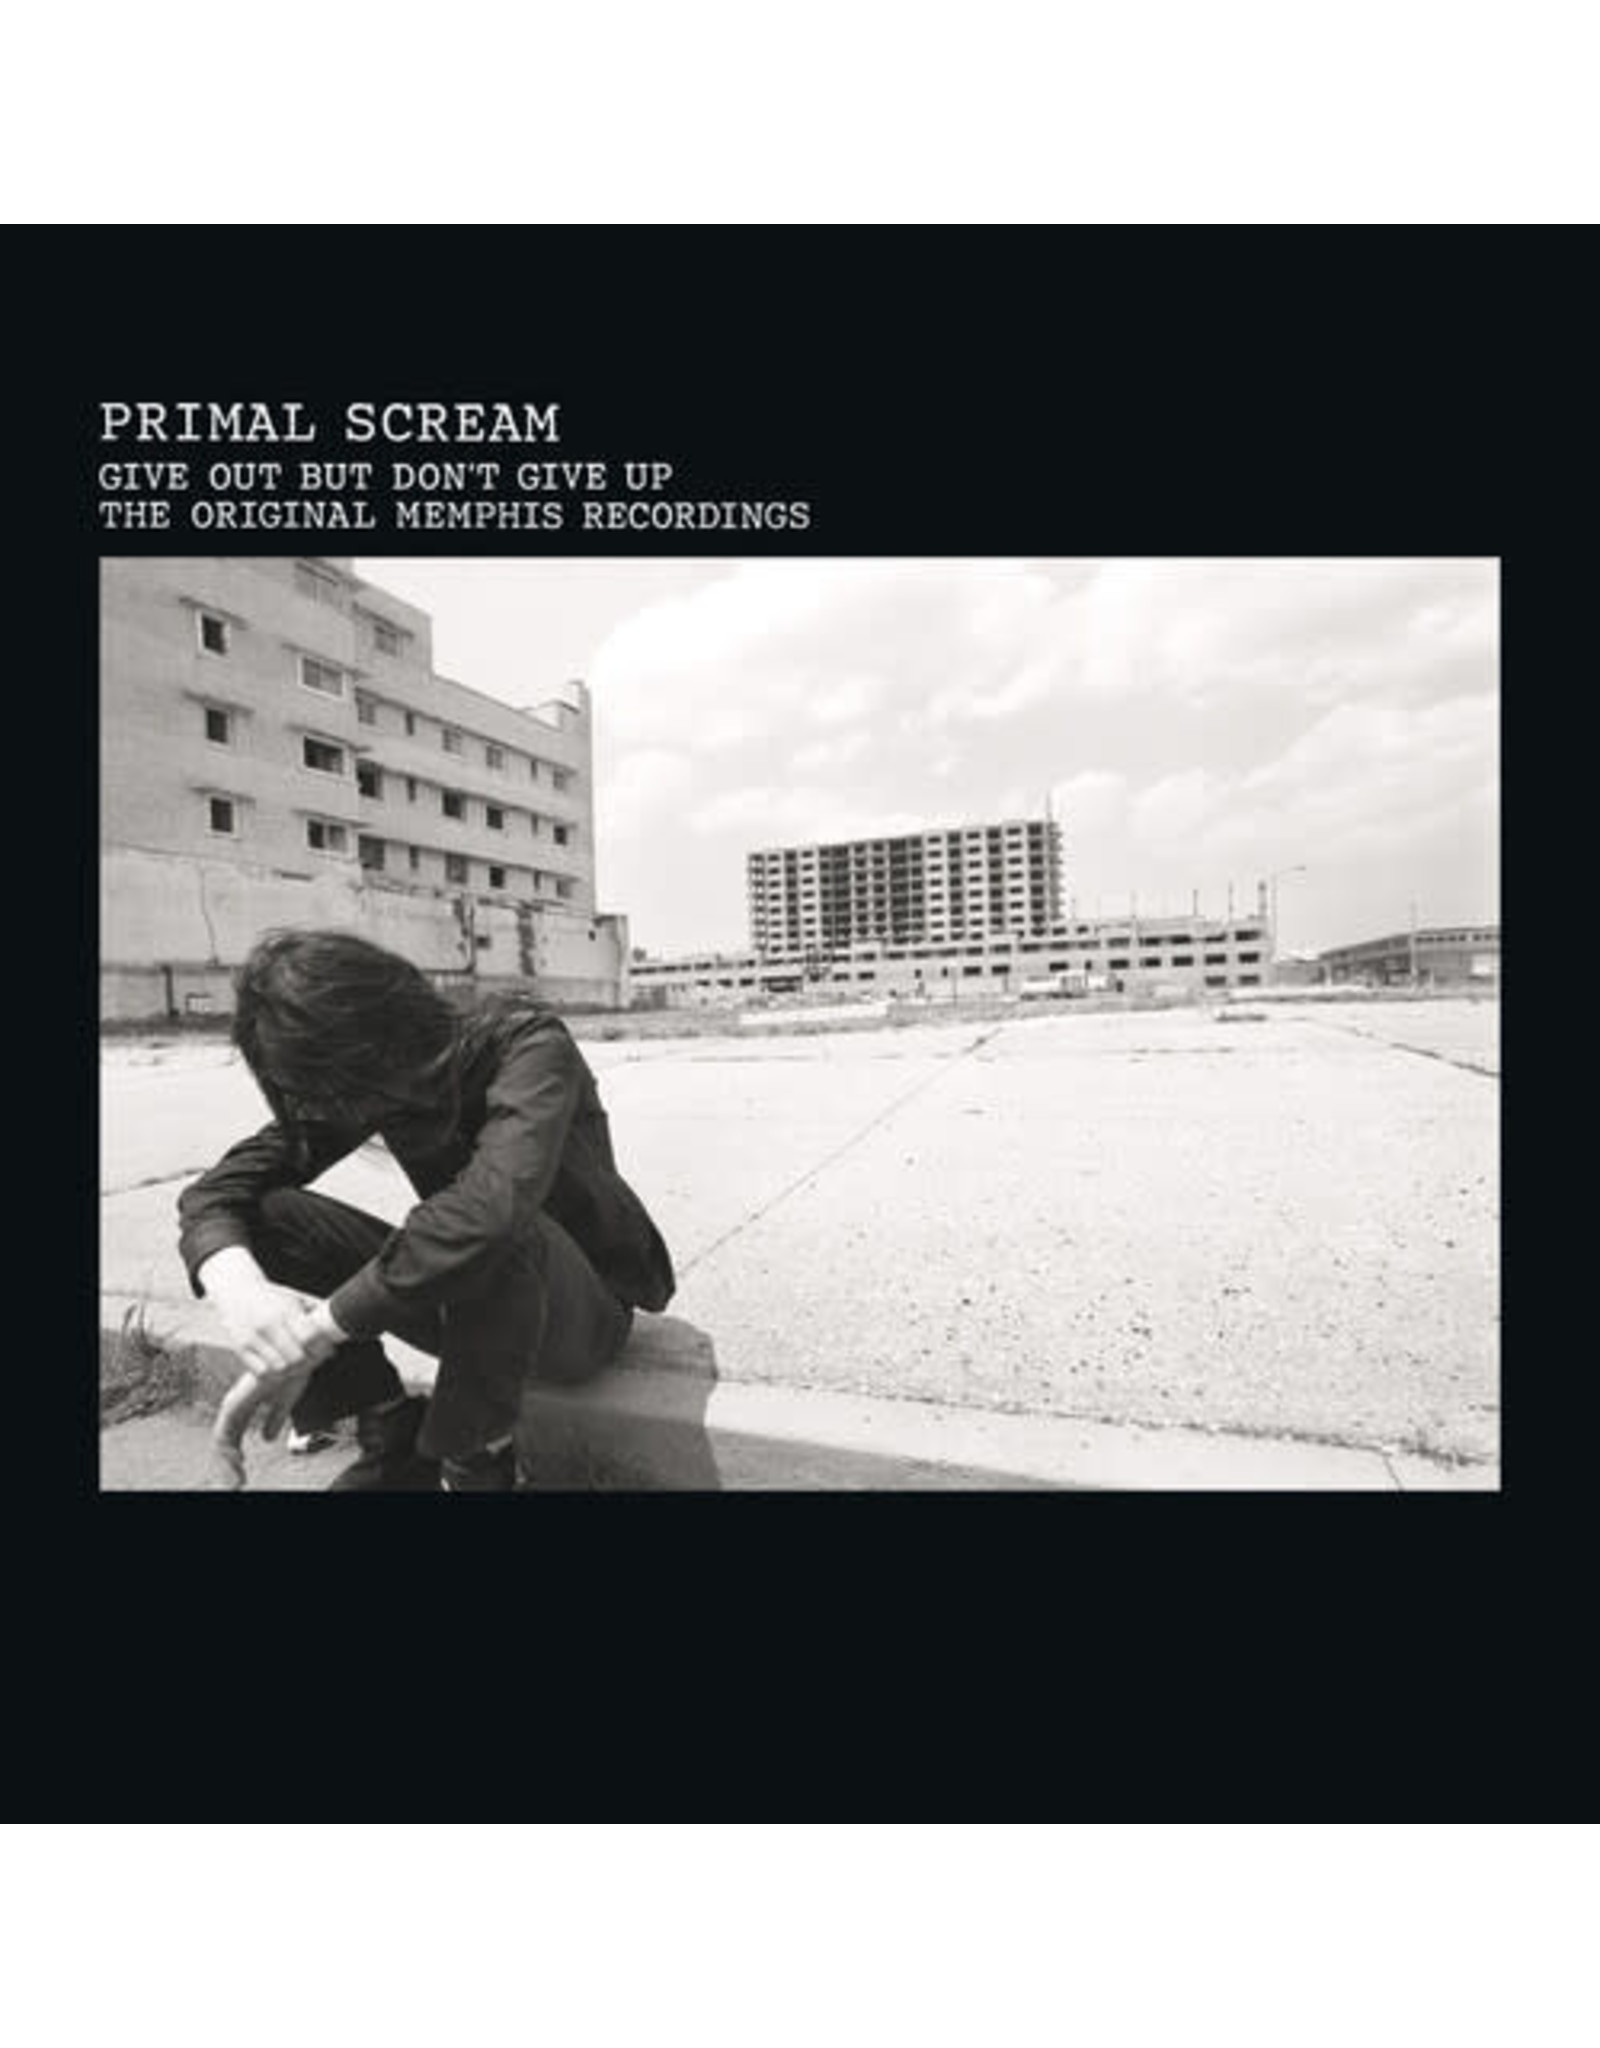 New Vinyl Primal Scream - Give Out But Don't Give Up: The Original Memphis Recordings 3LP